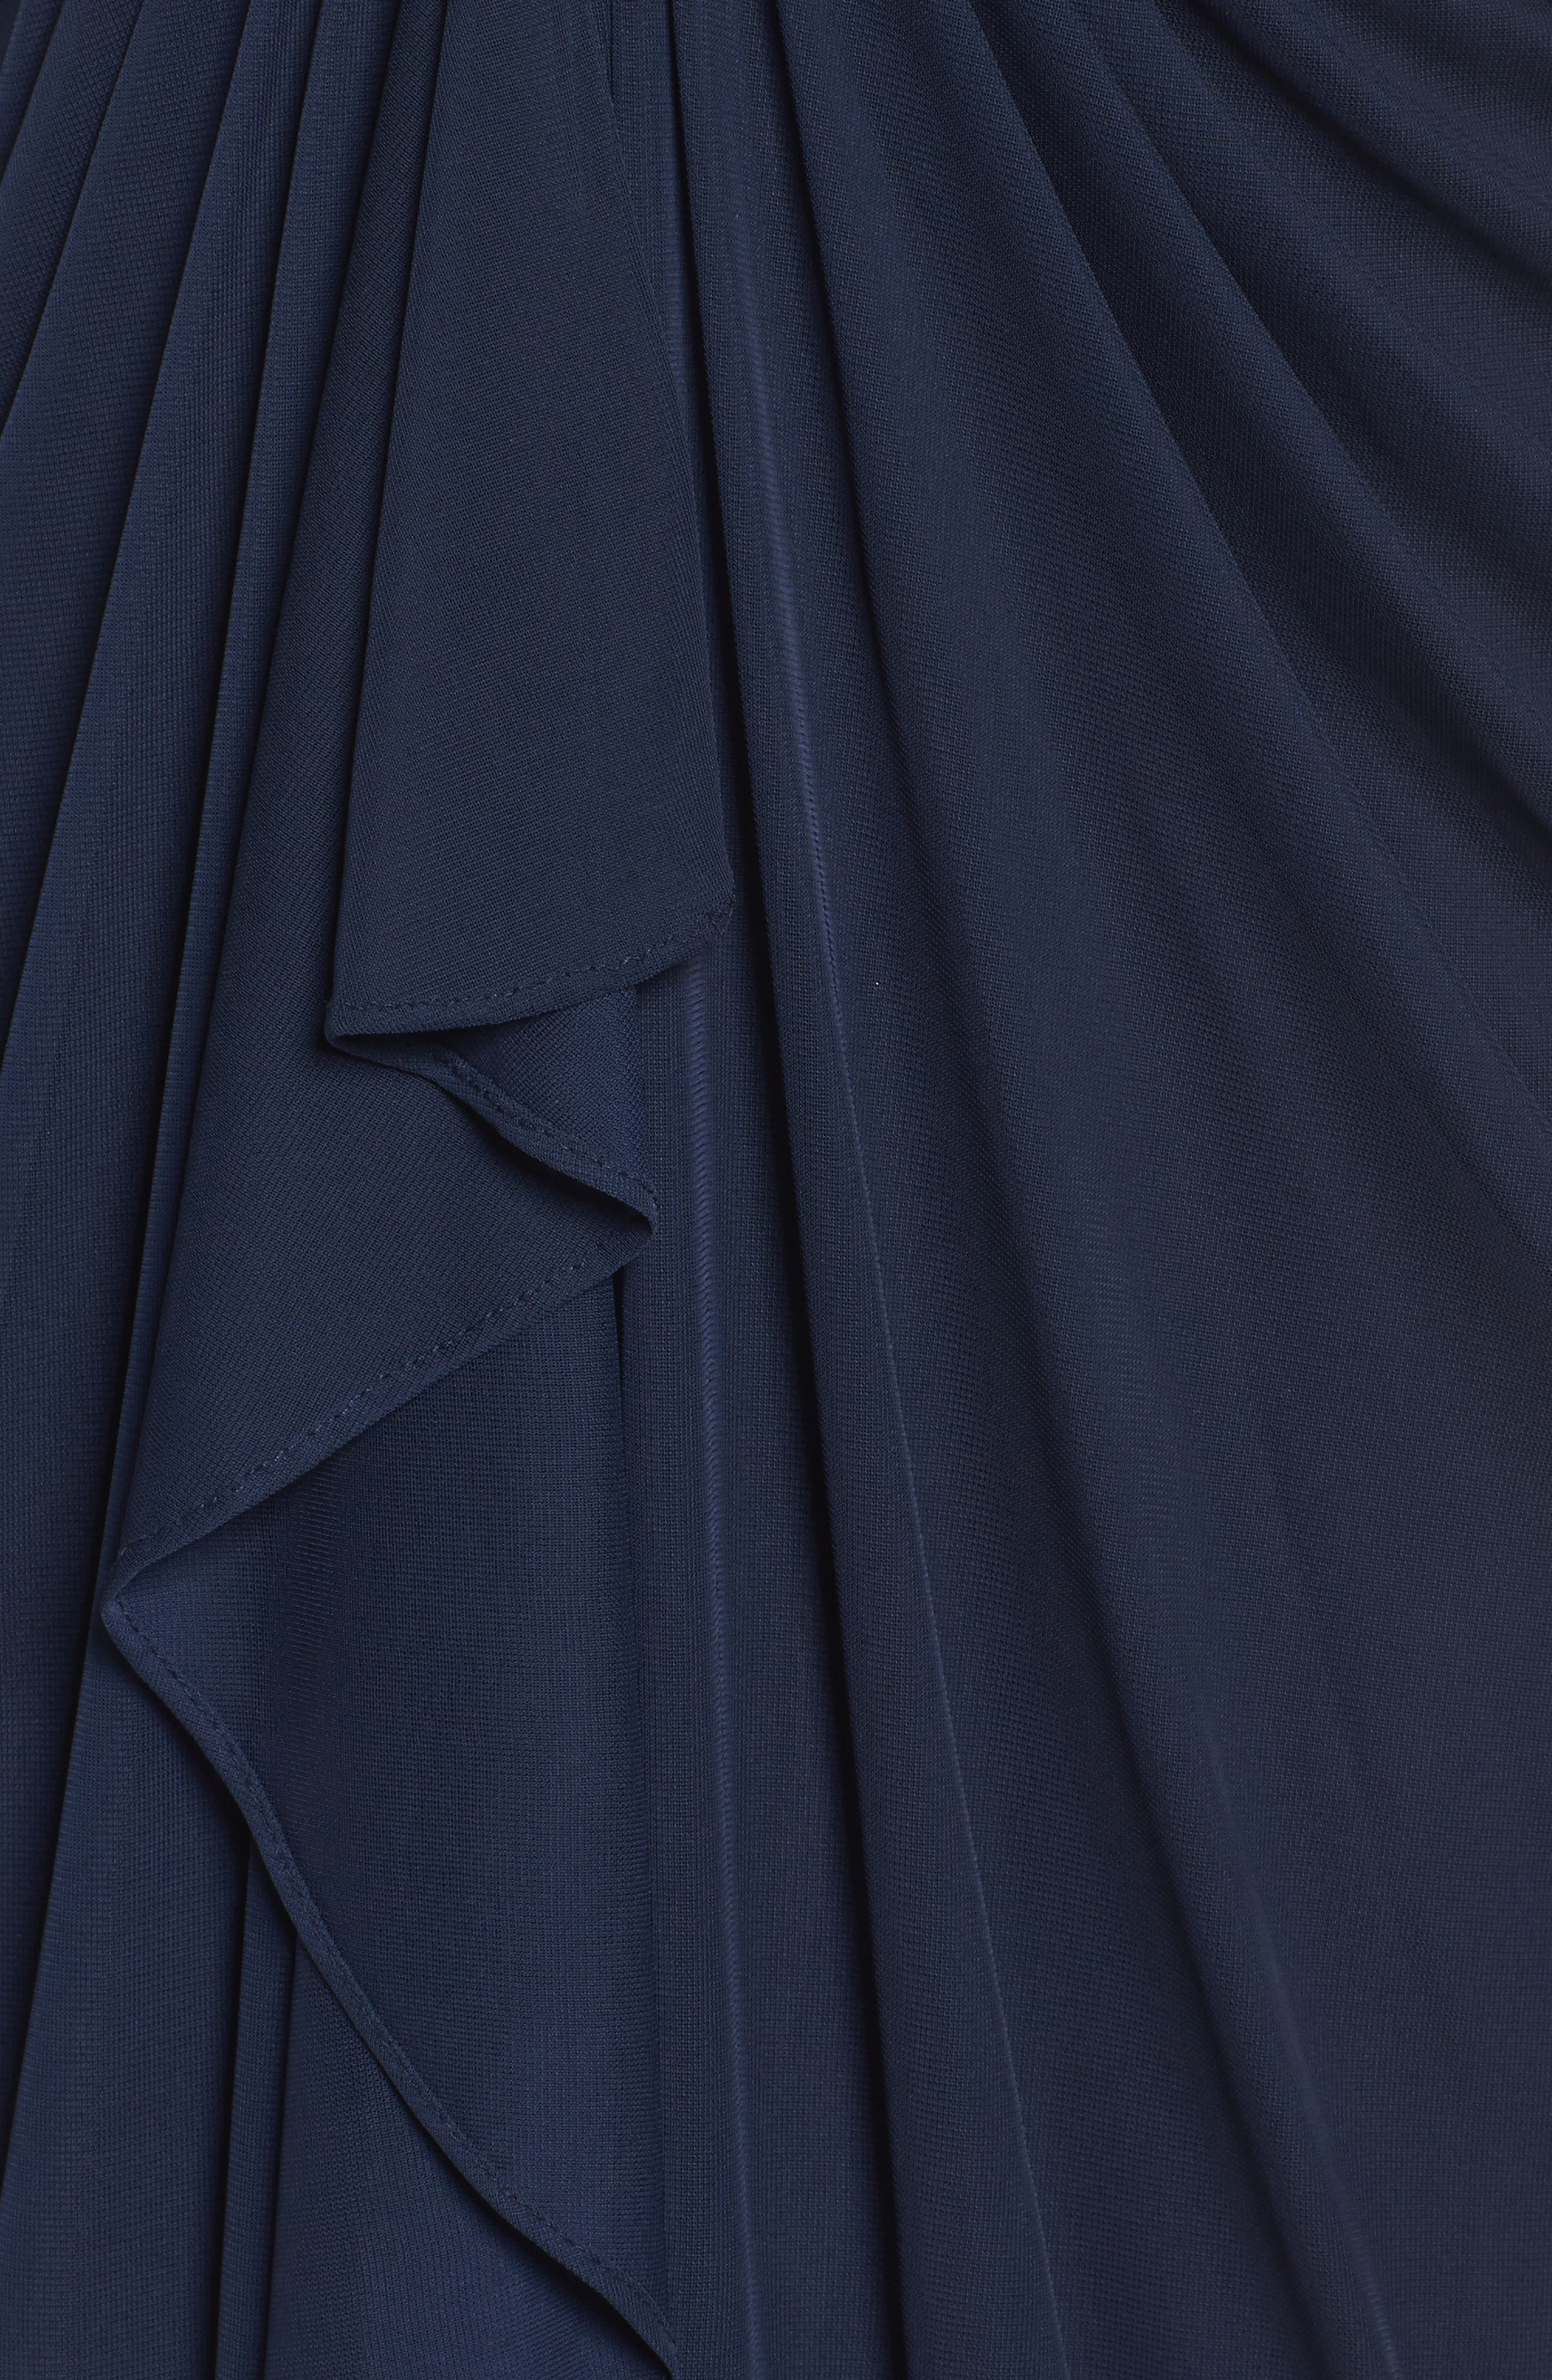 Draped Mesh Gown,                             Alternate thumbnail 5, color,                             Navy